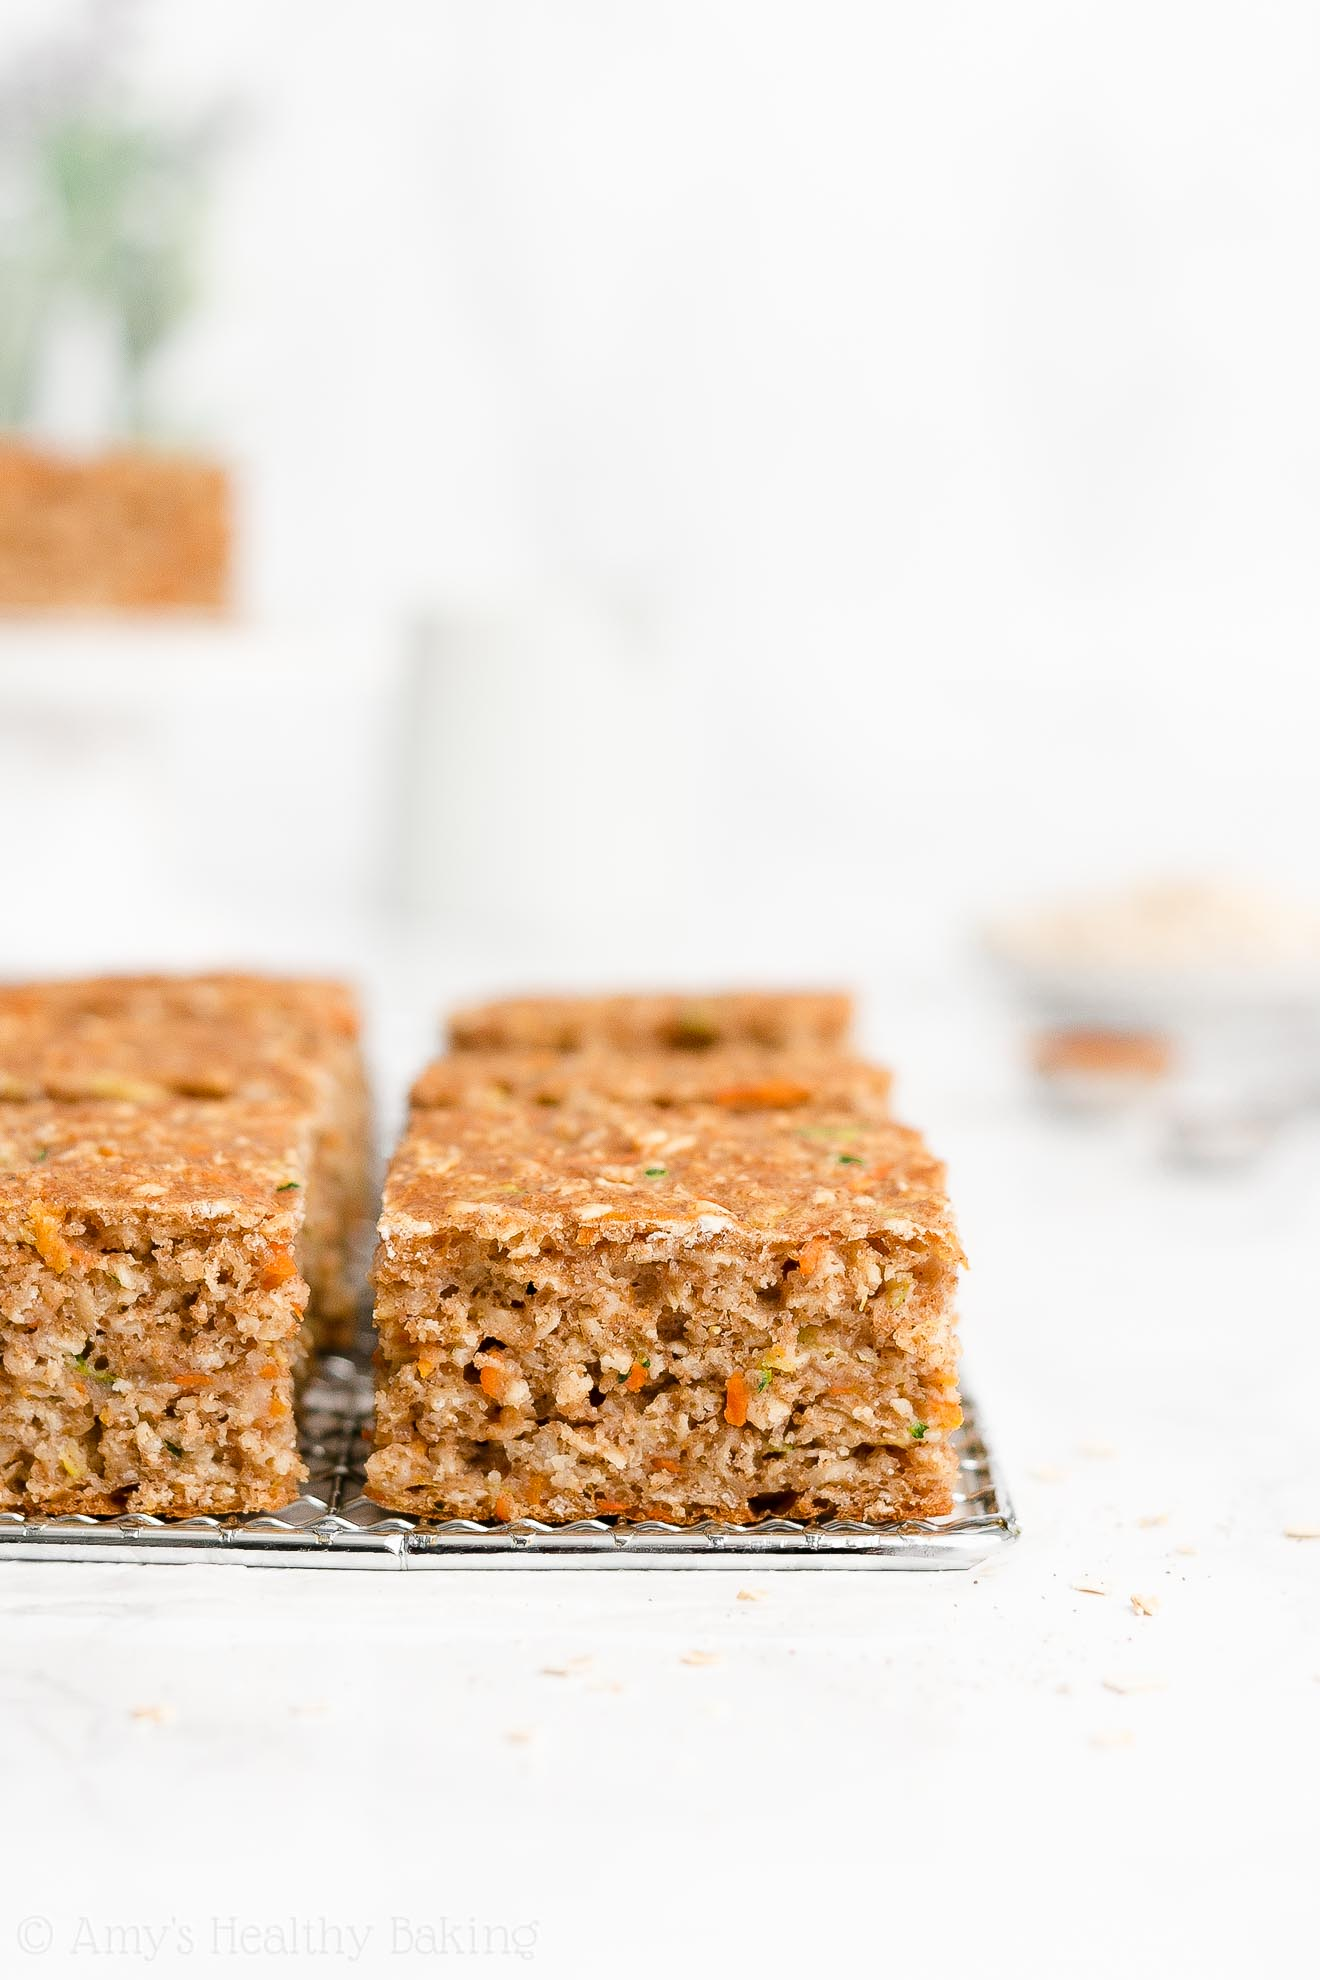 Easy Healthy Gluten Free Low Fat Moist Carrot Zucchini Oatmeal Snack Cake